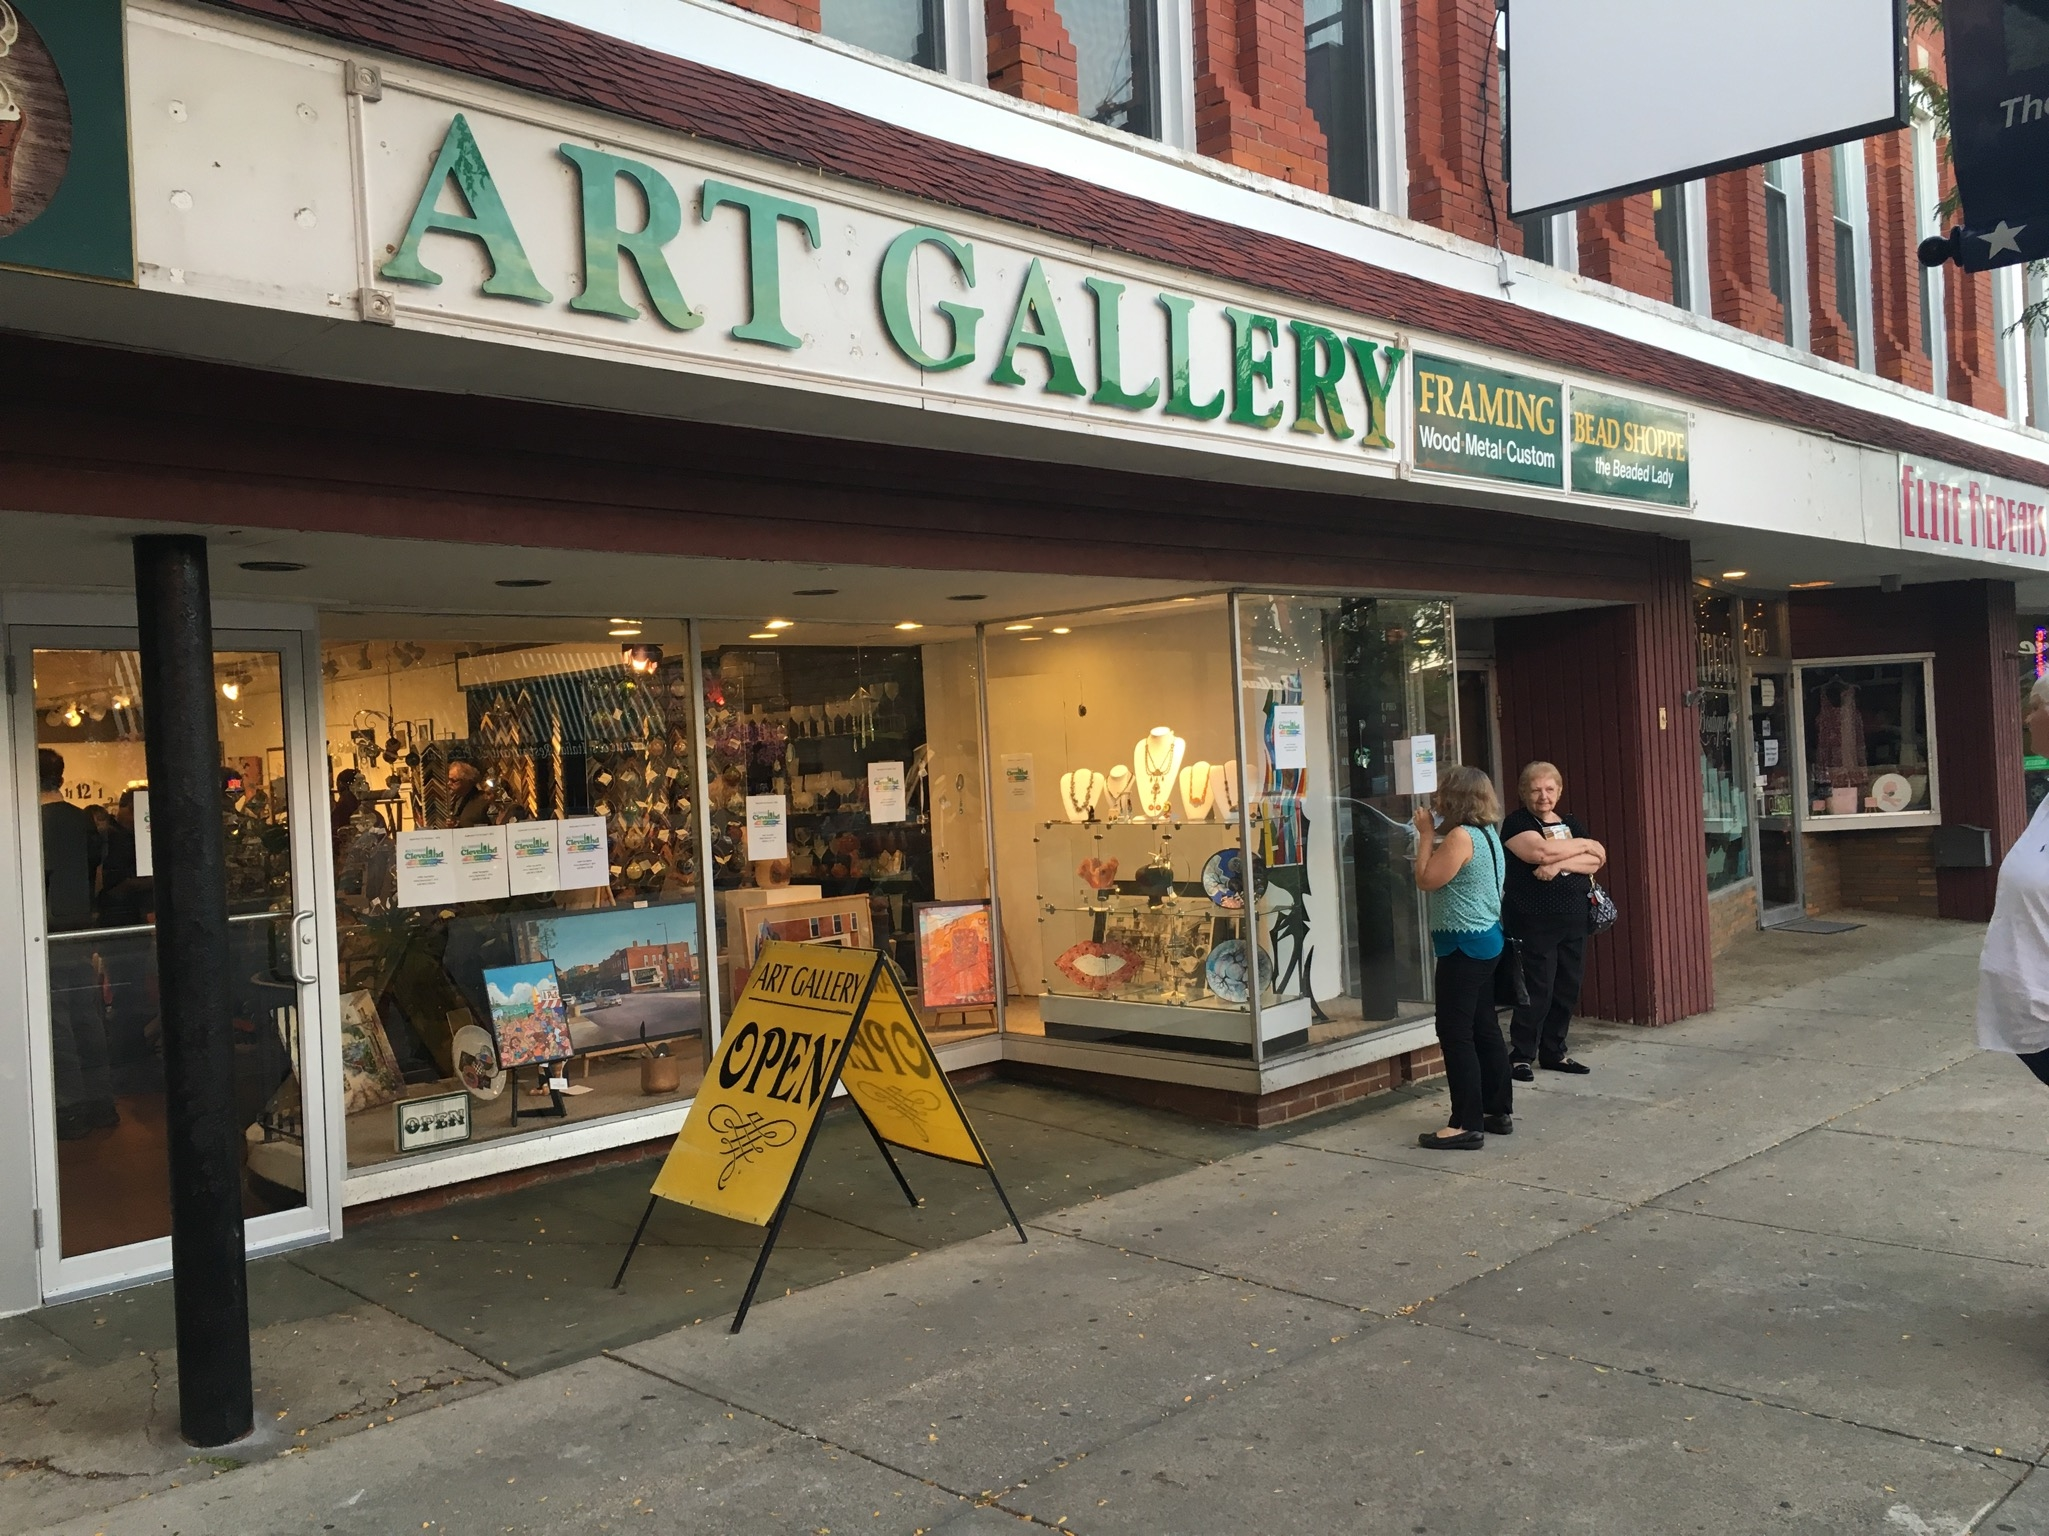 Our gallery, located at 4134 Erie St in Willoughby, OH.